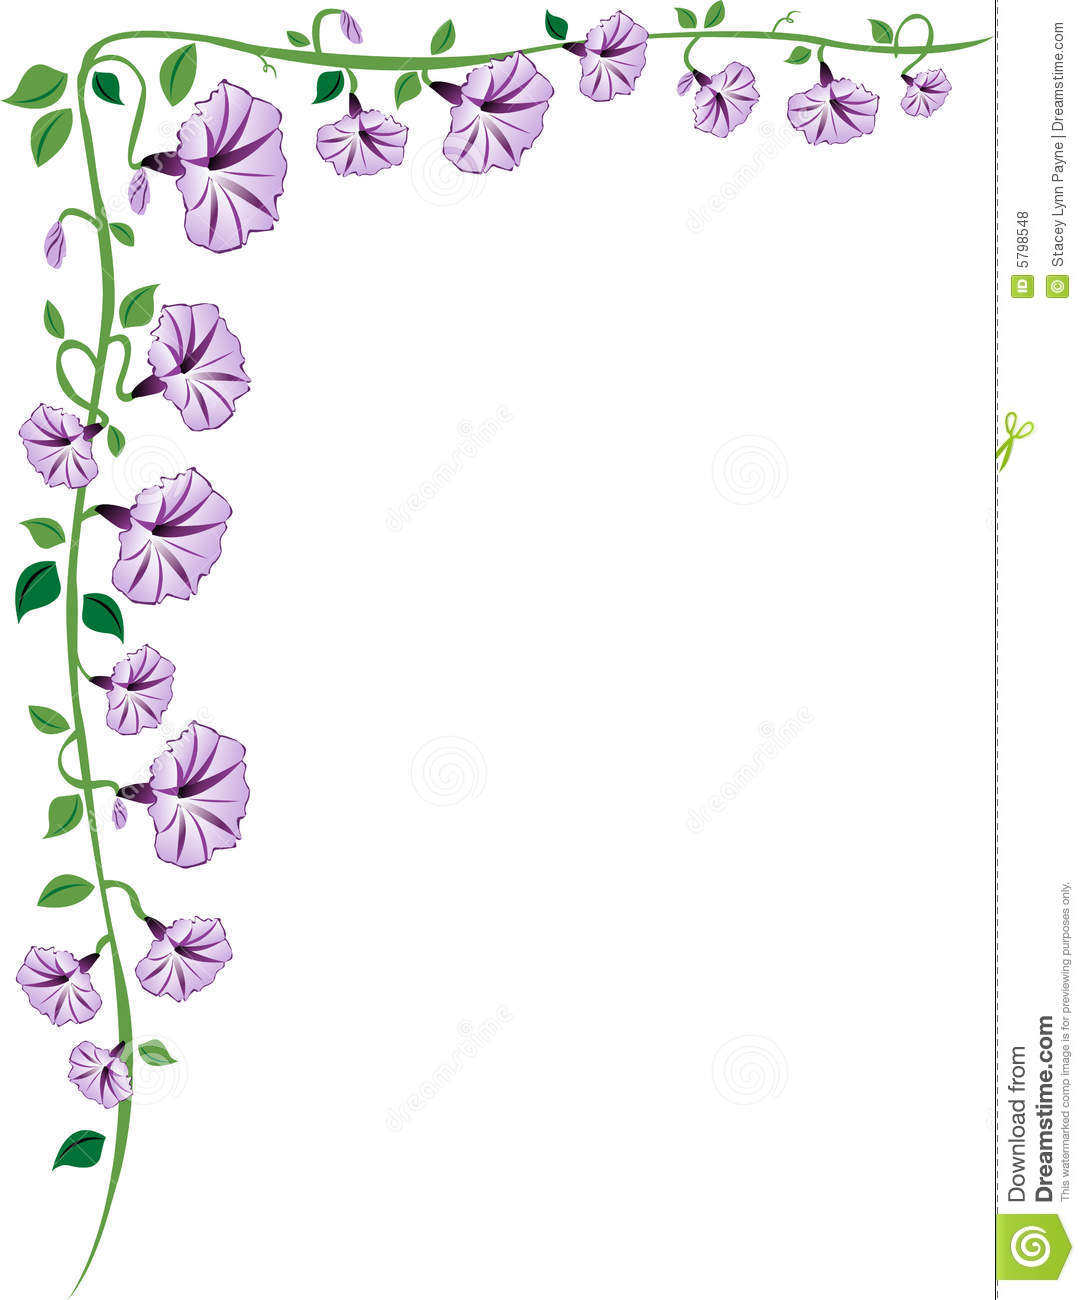 Vines clipart purple flower. Free vine cliparts download